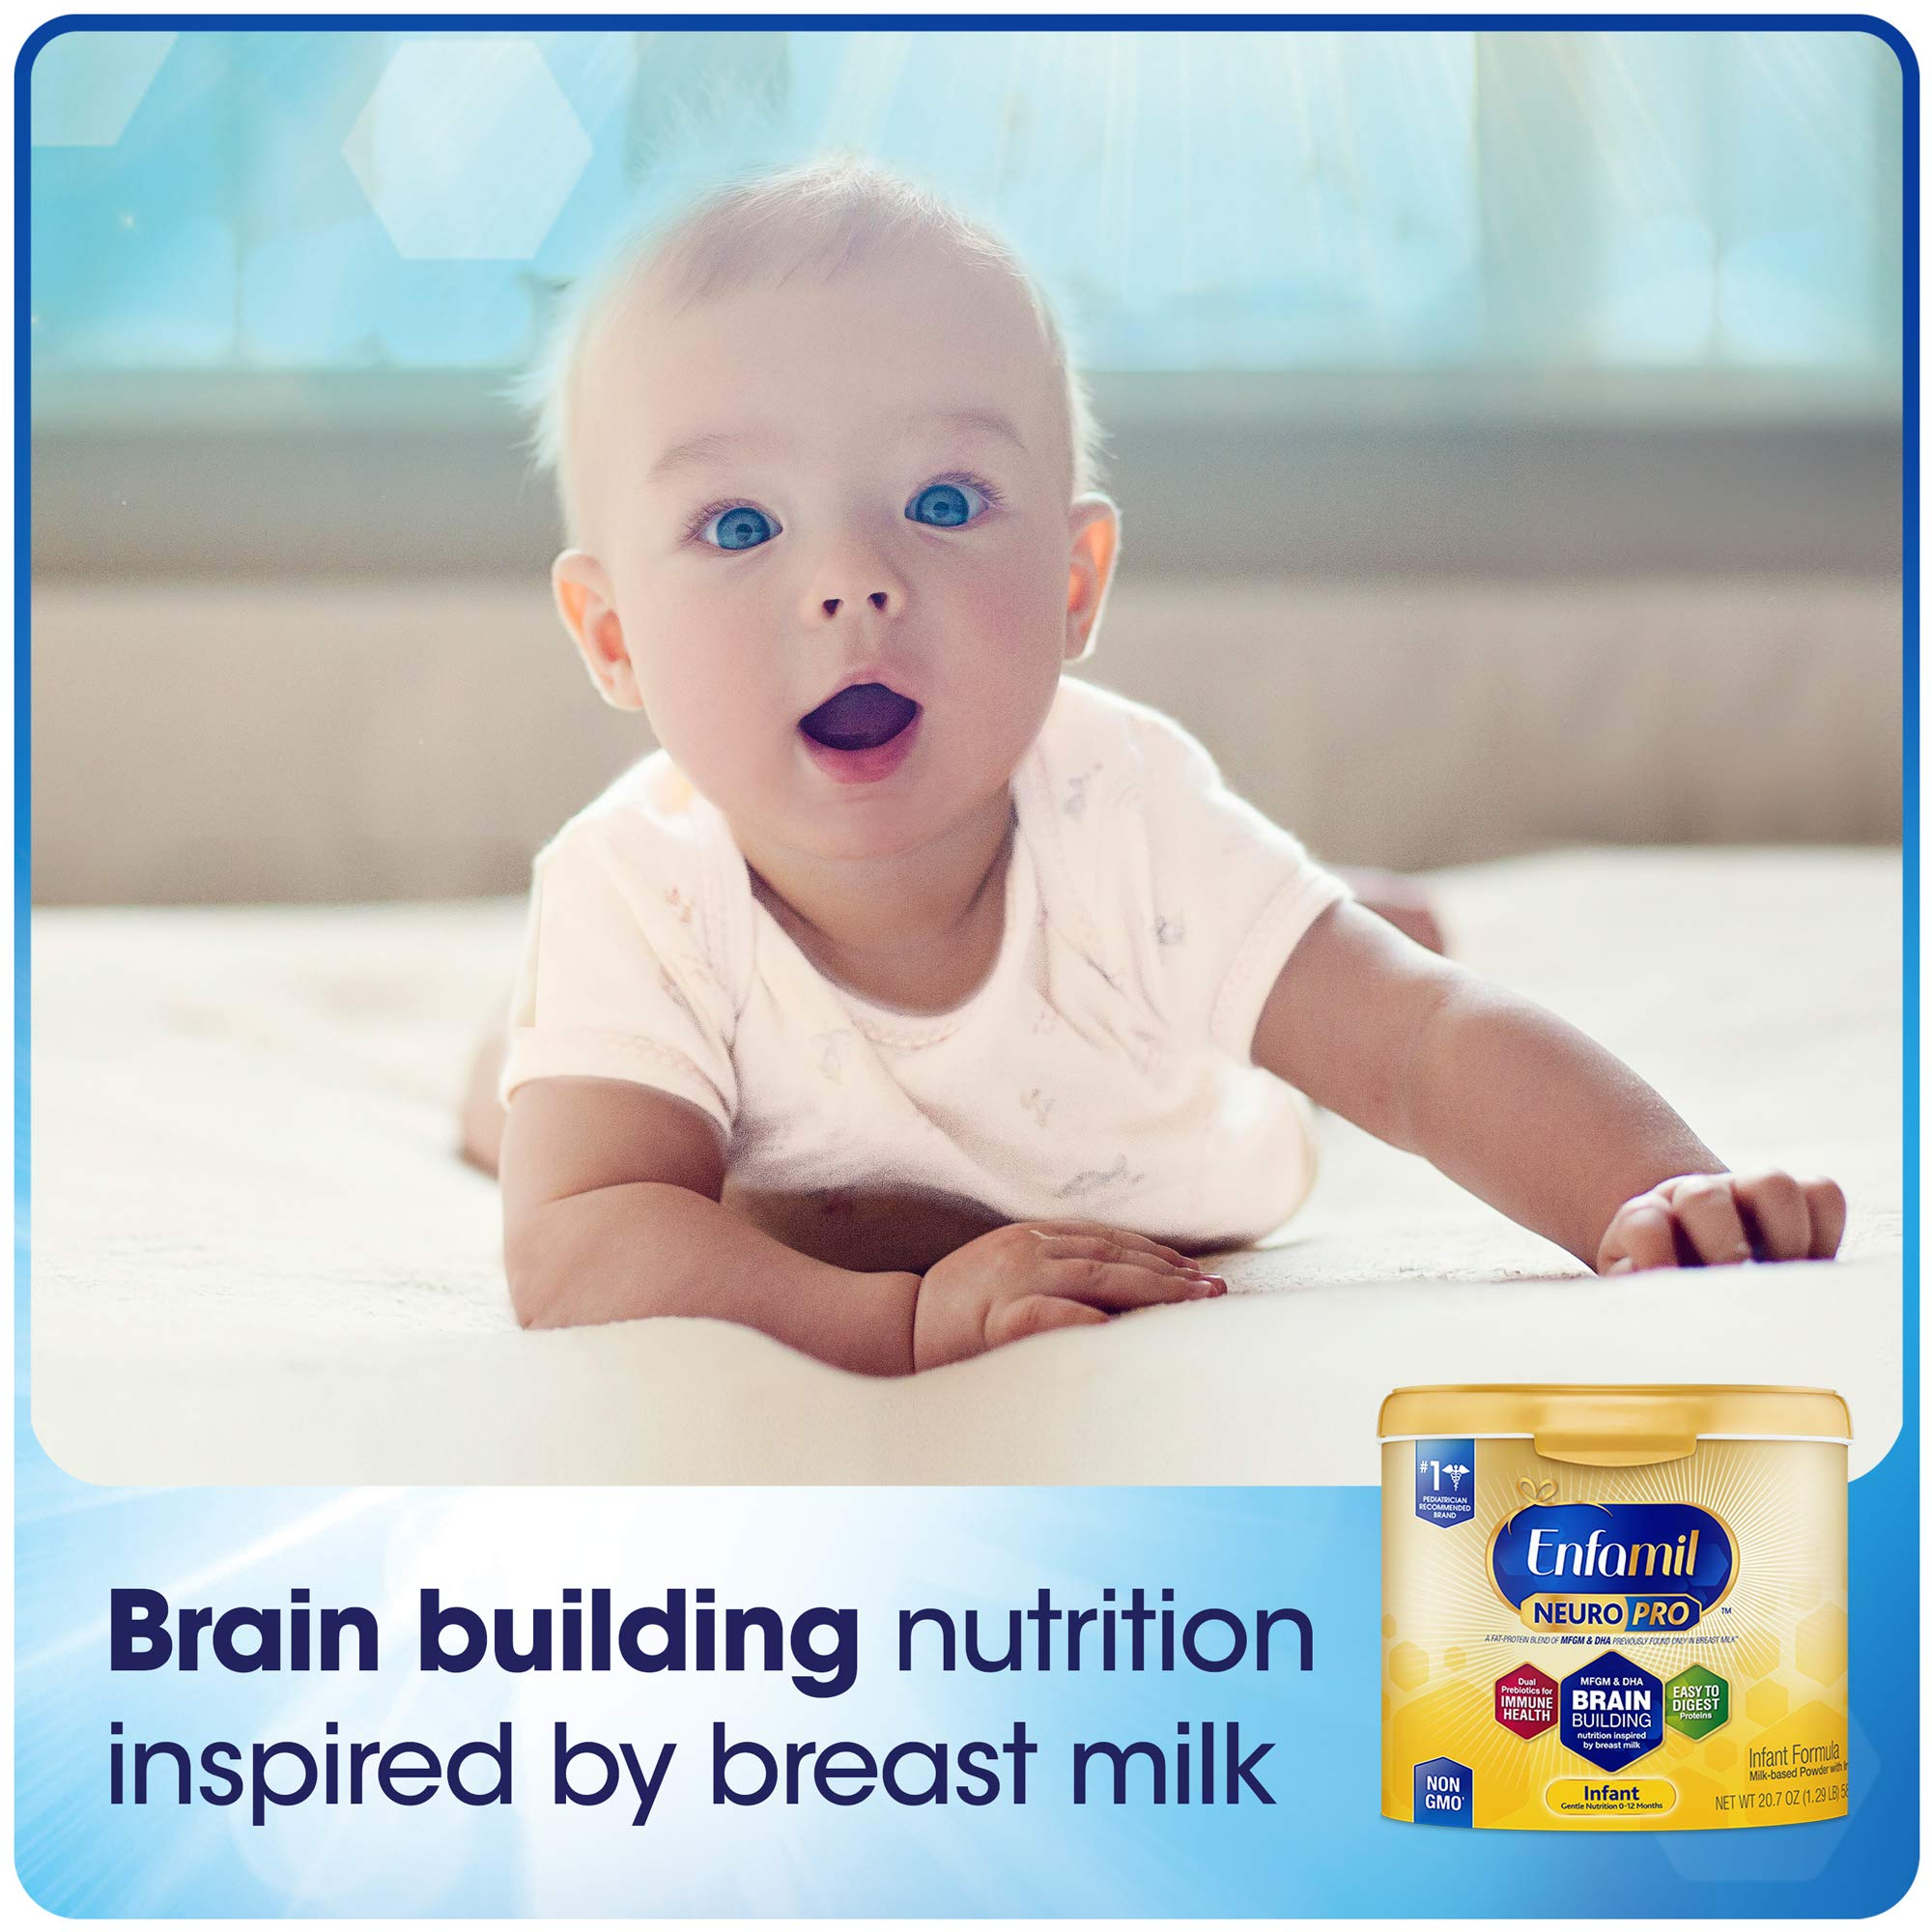 Enfamil NeuroPro Baby Formula Milk Powder, 20.7 Ounce (Pack of 6), Omega 3, Probiotics, Brain Support and Infant Formula - Ready to Use Liquid, 8 fl oz (24 count) Packaging May Vary by Enfamil (Image #2)